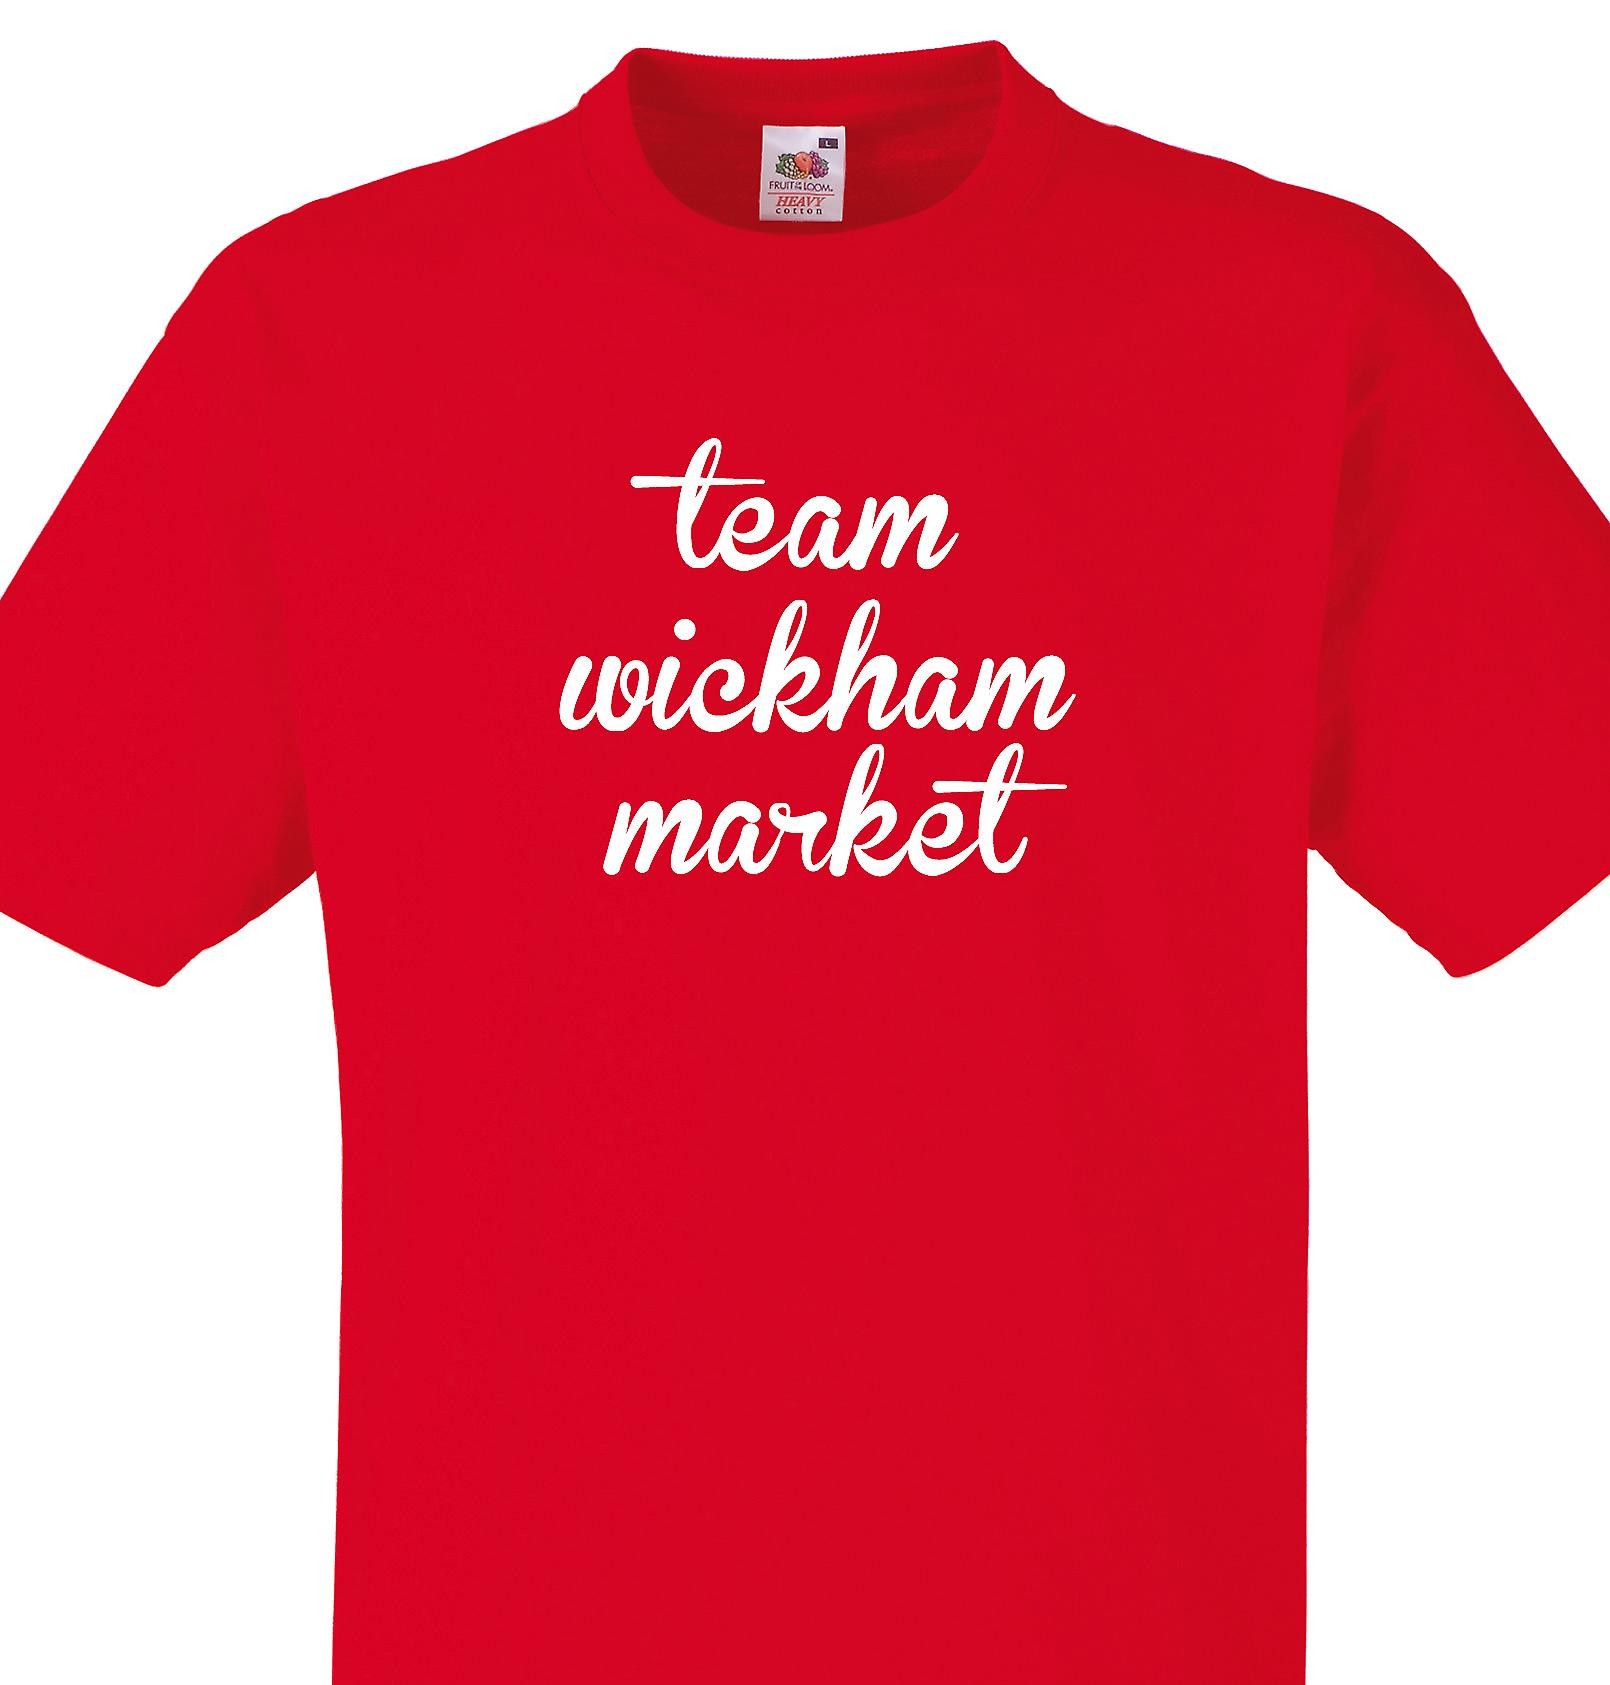 Team Wickham market Red T shirt